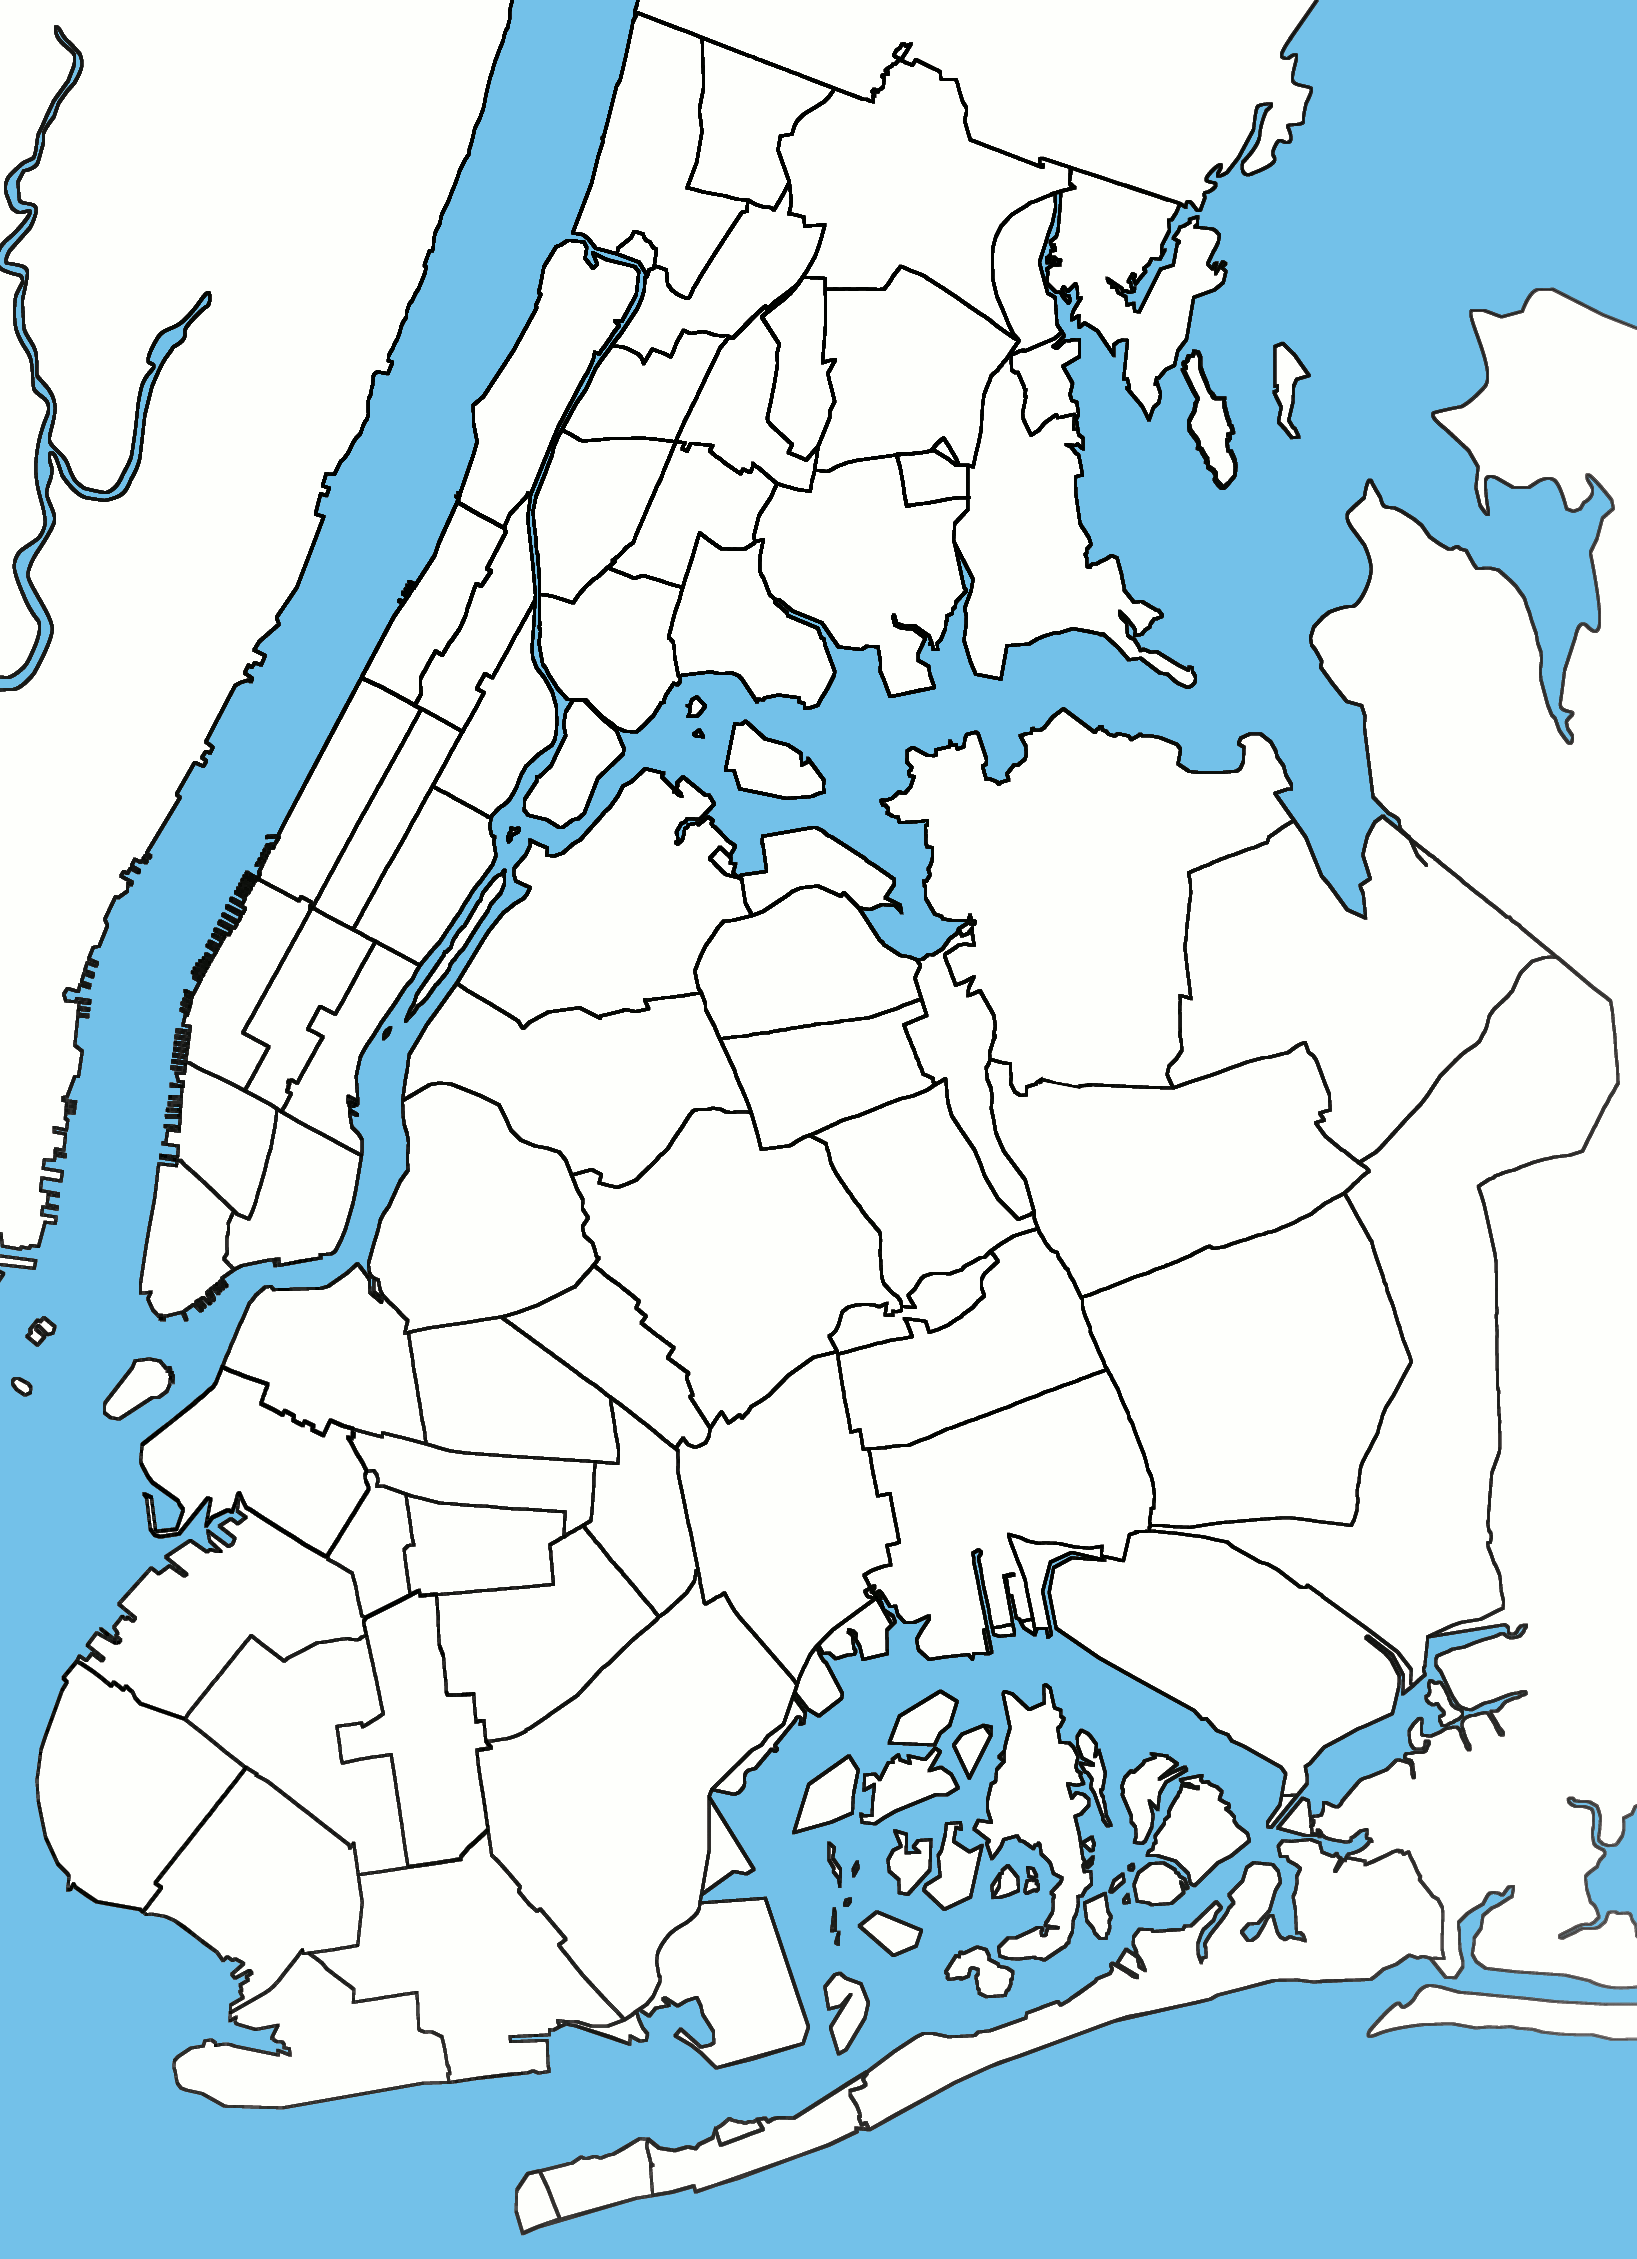 FileNewYorkCityneighborhoodsblanklinewidthpng Wikimedia - New york city map with neighborhoods